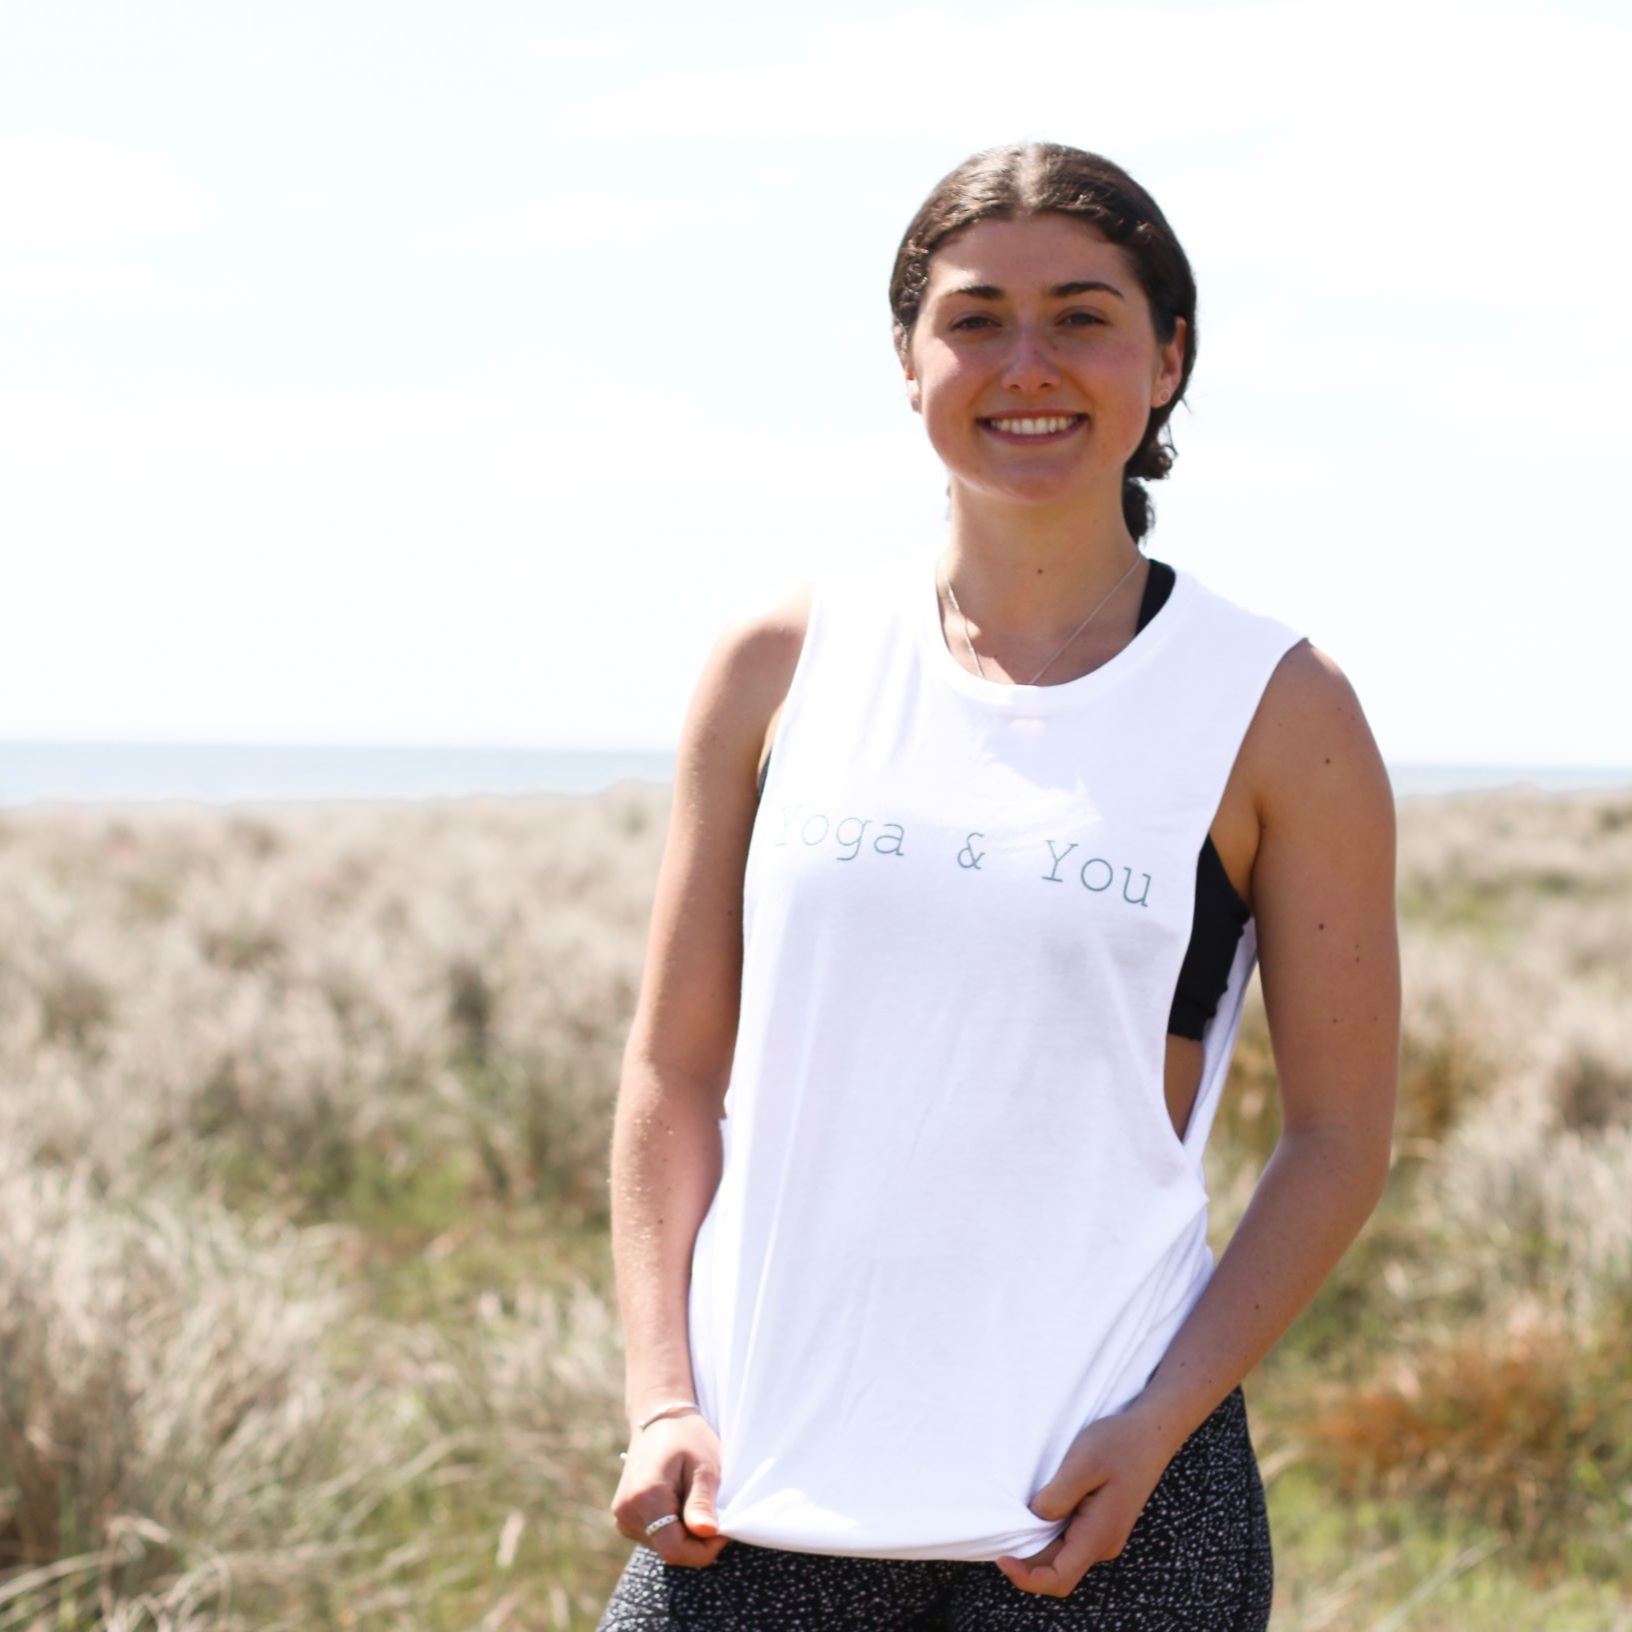 Hi, my name is Lauren - I am a qualified personal trainer and passionate student and teacher of yoga. This wonderful practice is a life long journey, no class or day is ever the same. Yoga teaches us to accept where we are, to be kind to our bodies and helps us to be fully, deeply and genuinely present.I look forward to seeing you on the mat soon!